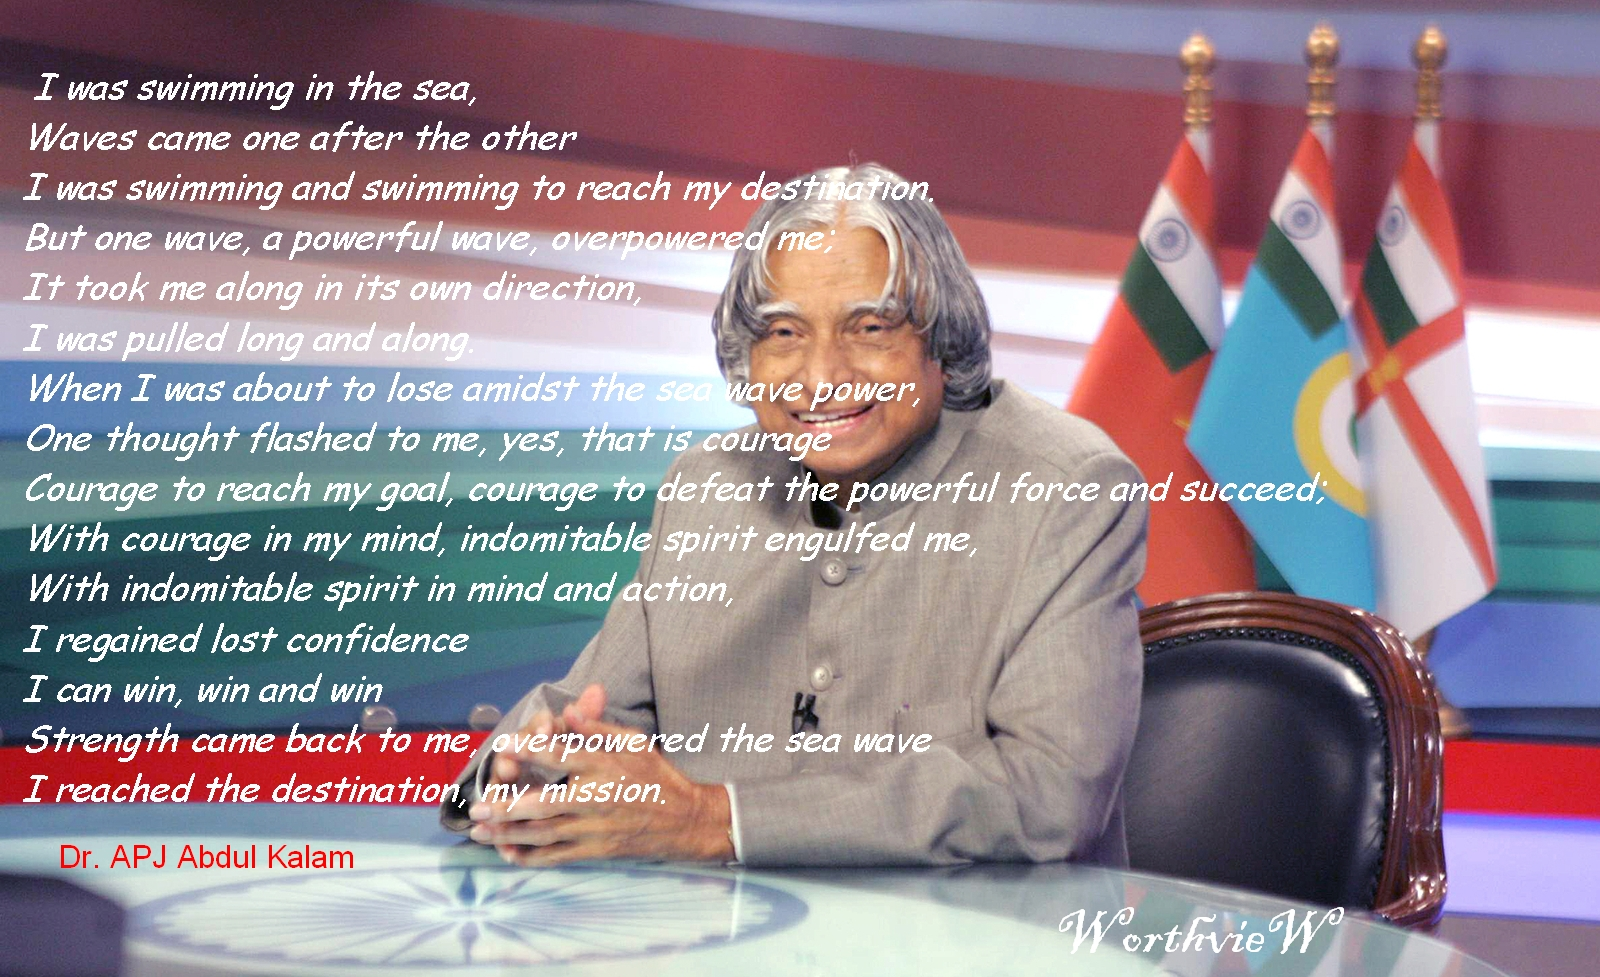 Indomitable Spirit by Dr APJ Abdul Kalam